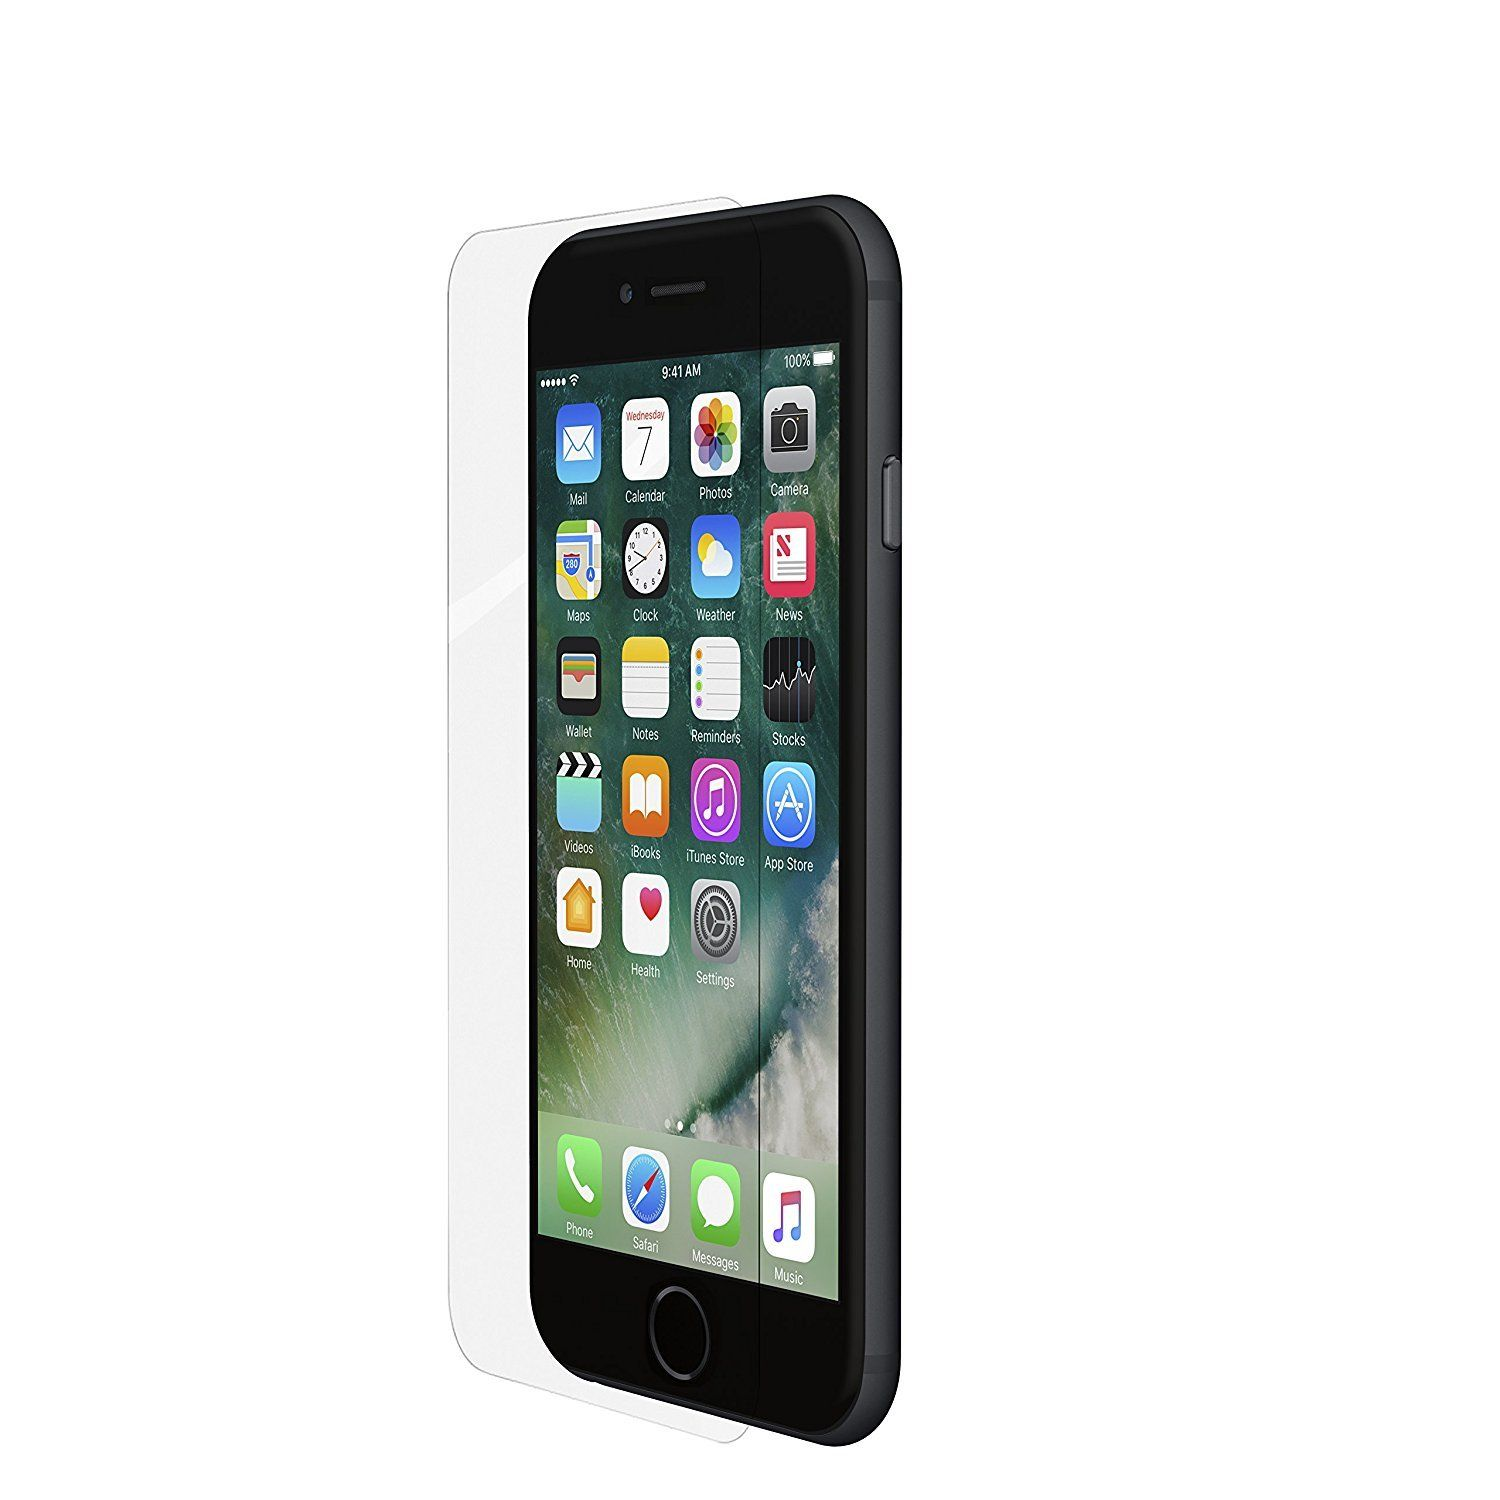 Belkin Screenforce Invisiglass Ultra Glass Screen Protector For Iphone 7 Plus And Iphone 8 Plus Iphone Iphone 7 Plus Screen Protector Iphone